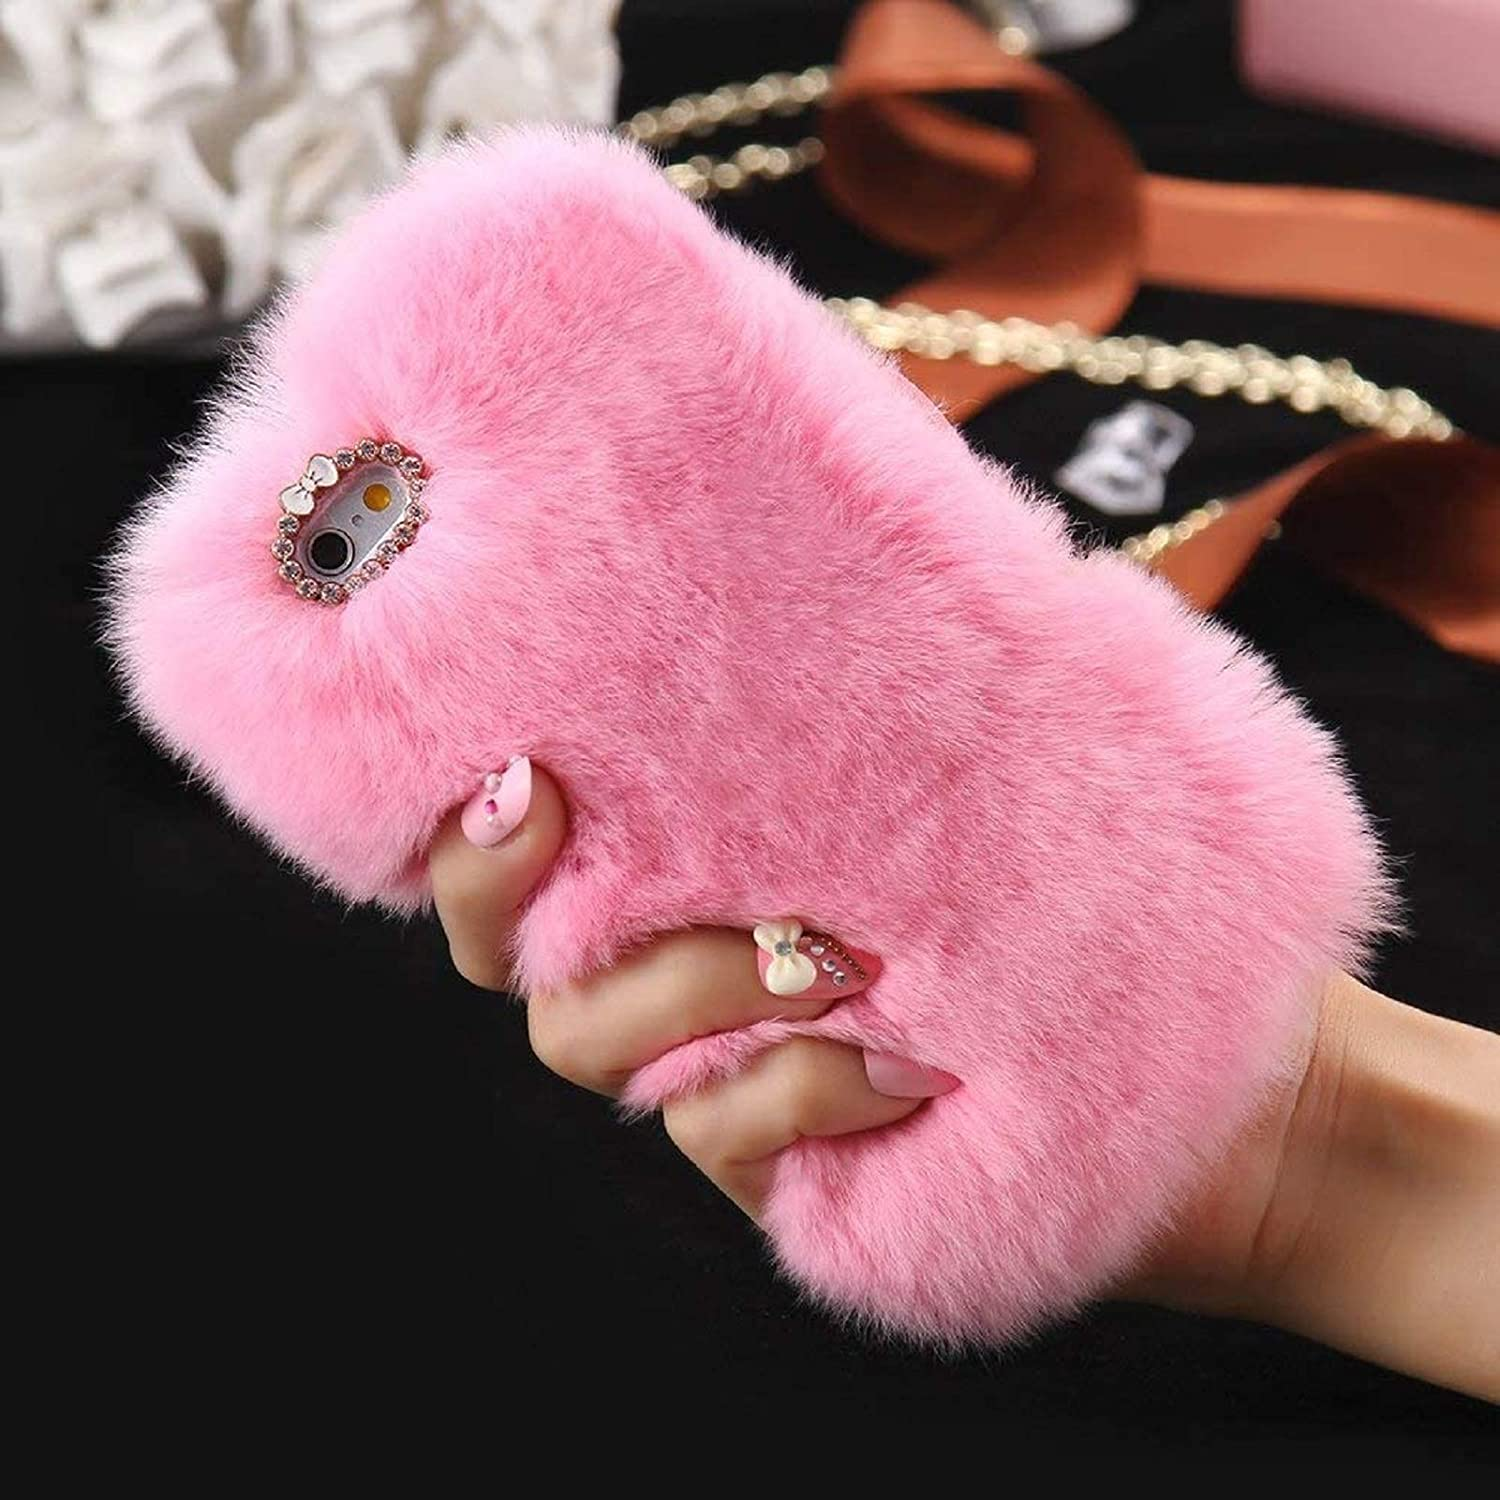 Cfrau Furry Case Elegant with Black Stylus for Winter pro Max 46% OFF iphone 13 max